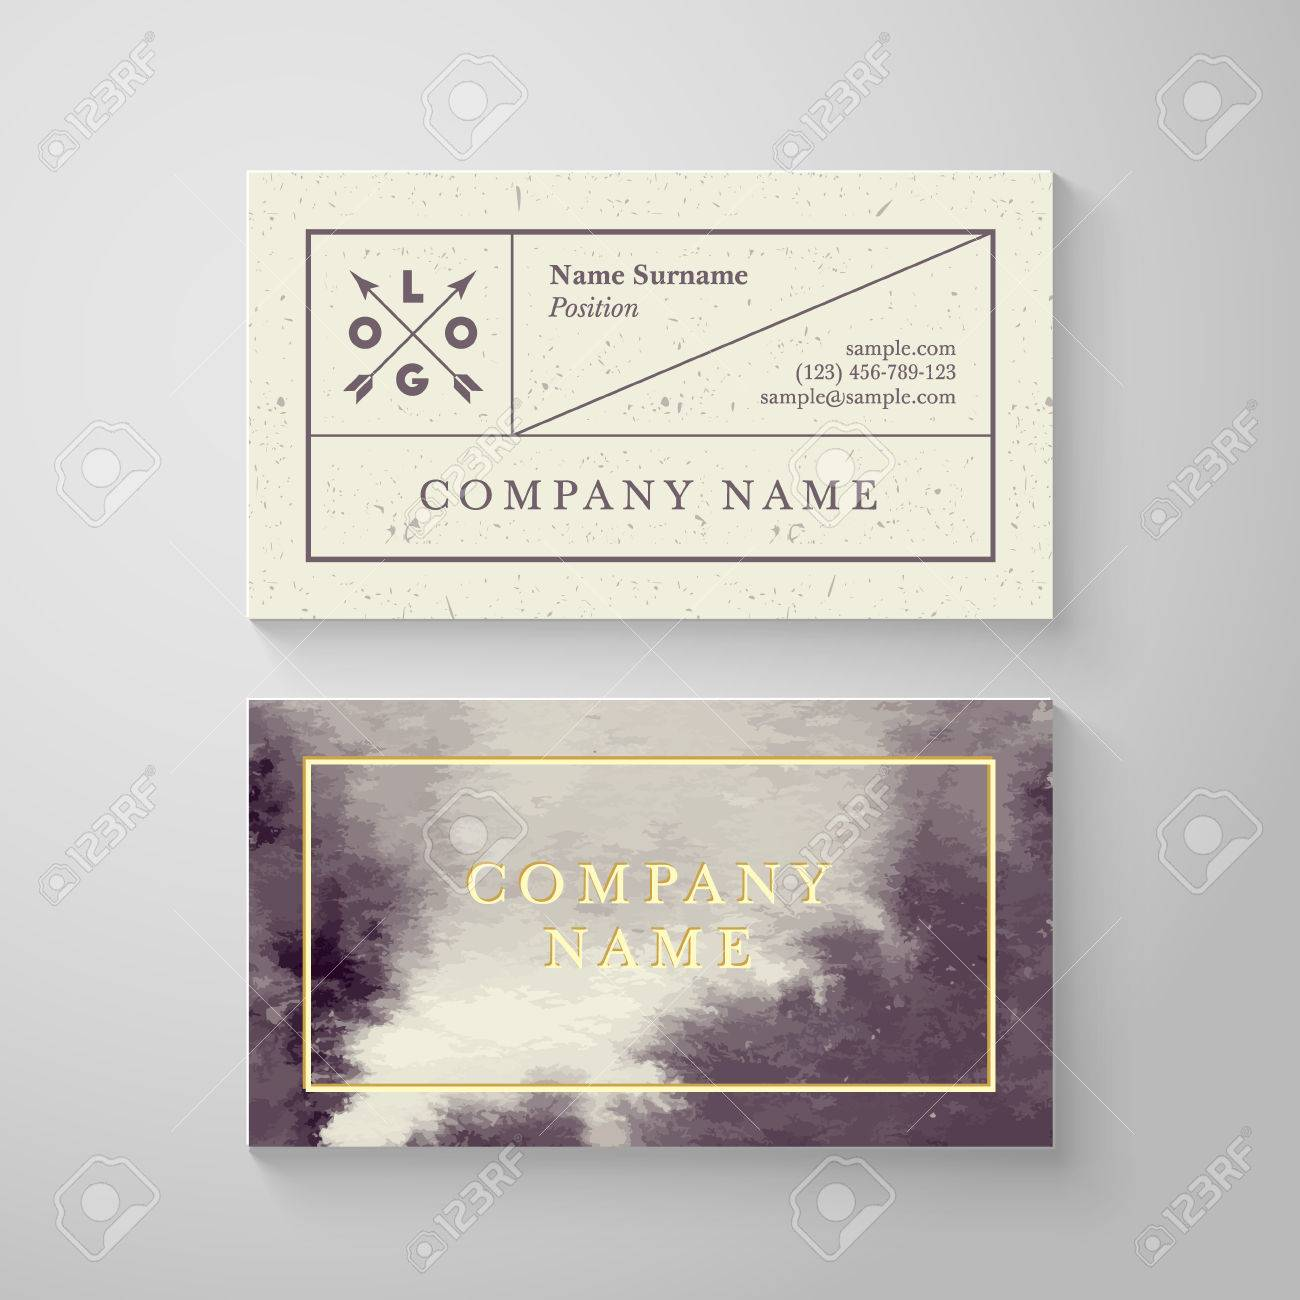 Trendy Watercolor Cross Processing Business Card Template. High ...